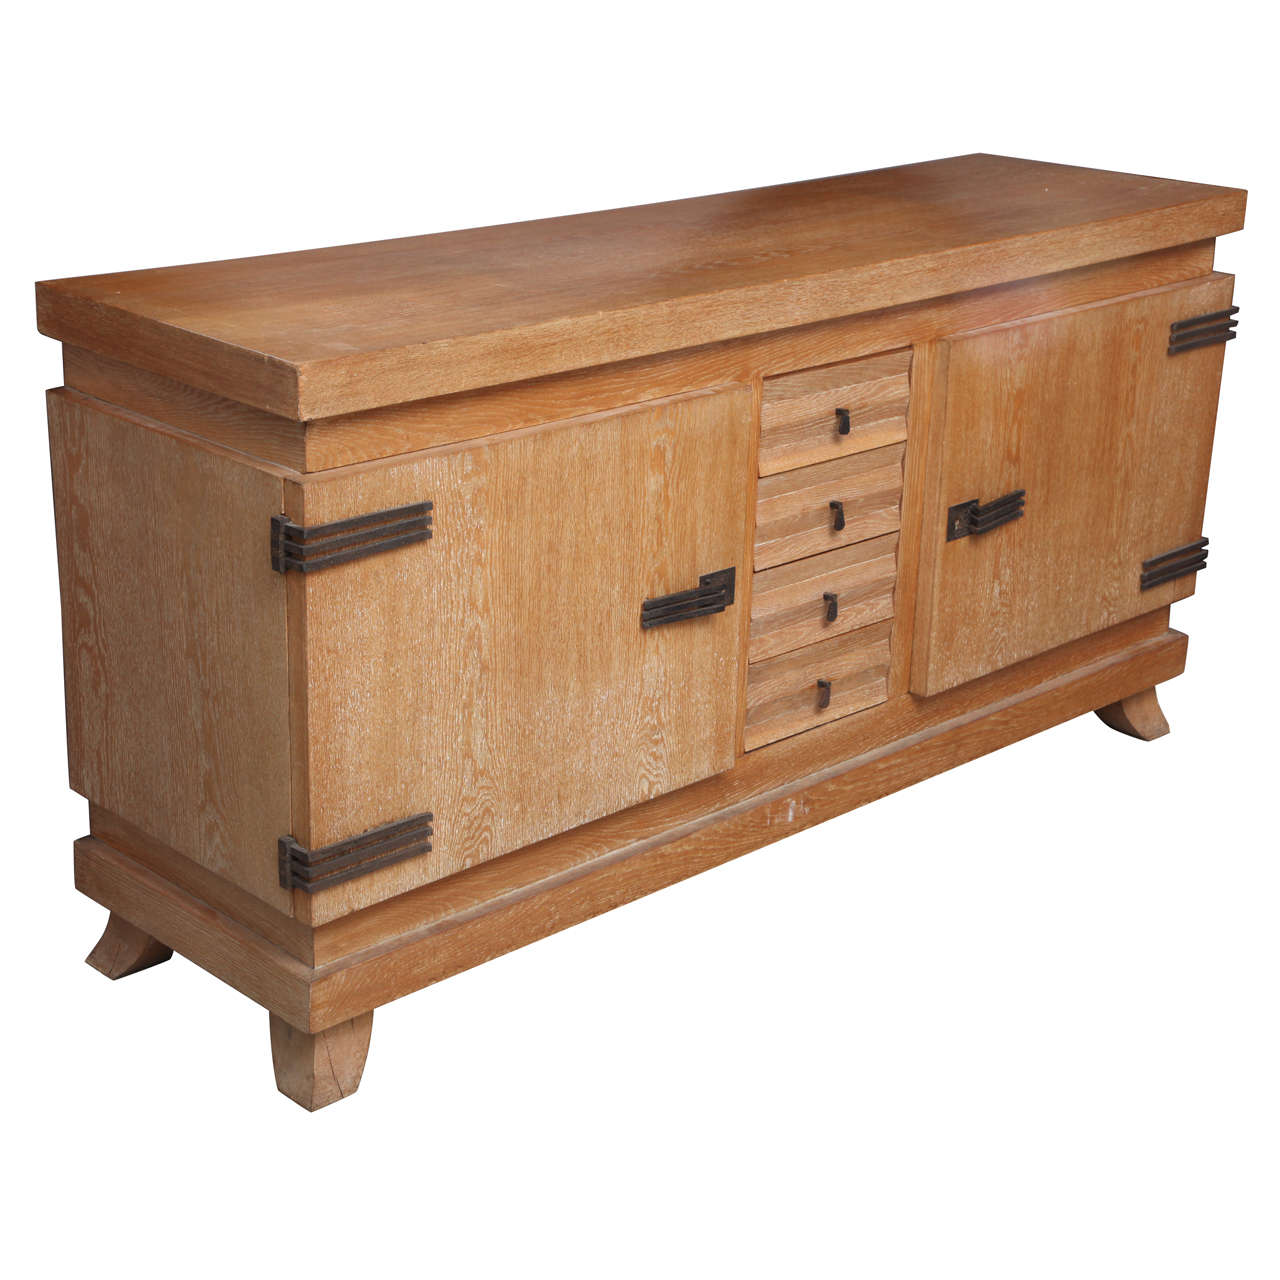 Cerused French Oak Kitchens And Cabinets: Outstanding French Cerused Oak And Iron Cabinet At 1stdibs